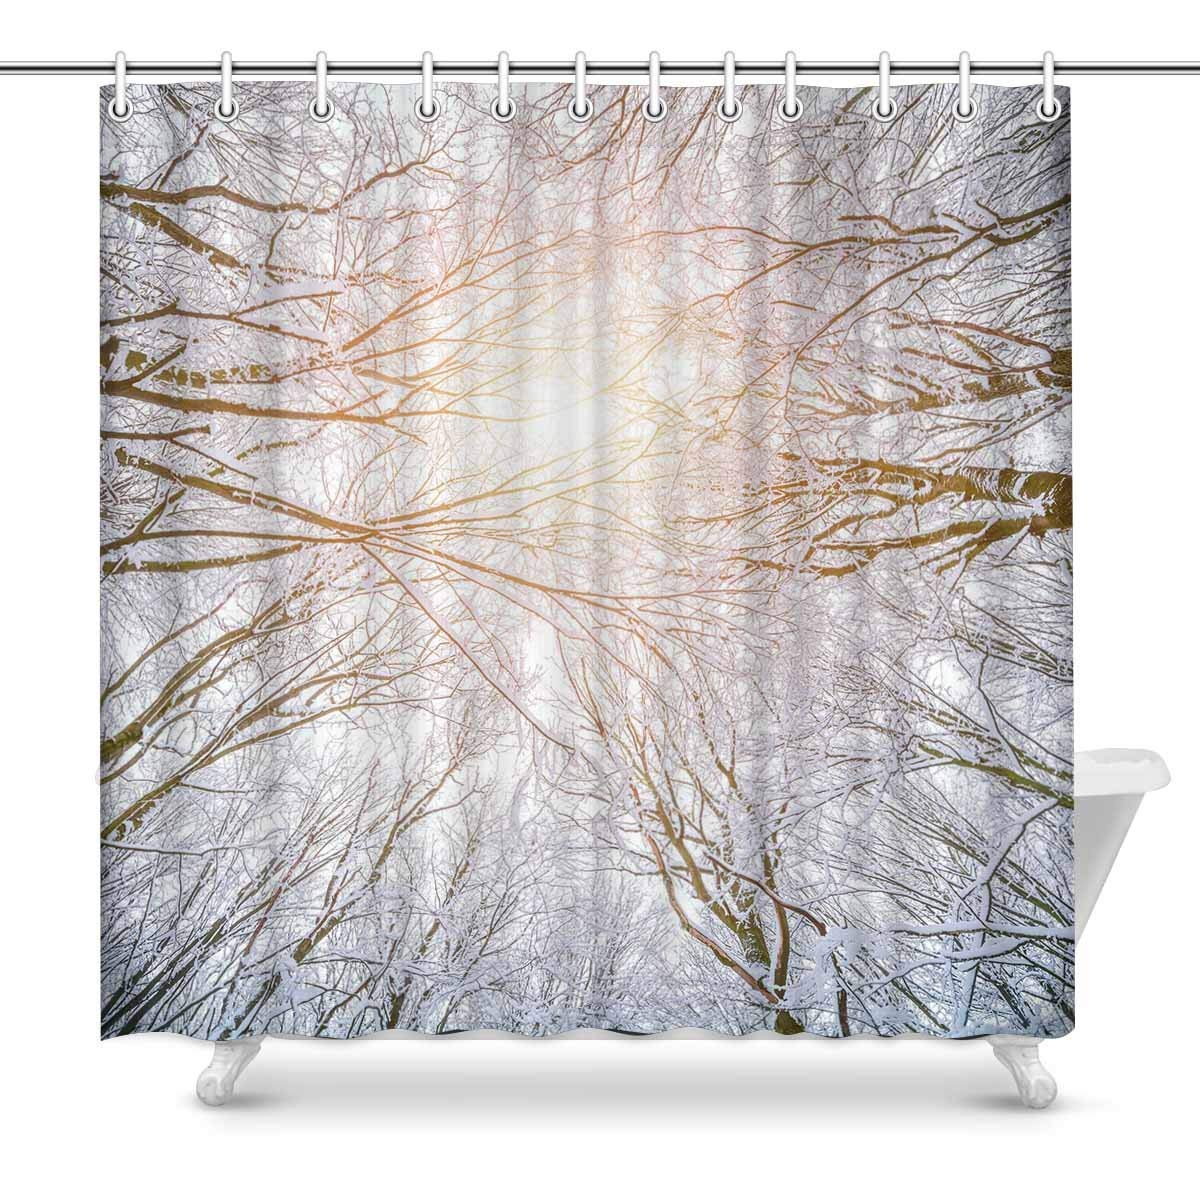 GCKG Bottom View Of Winter Forest Shower Curtain Frosty Woddland Polyester Fabric Bathroom Sets 66x72 Inches